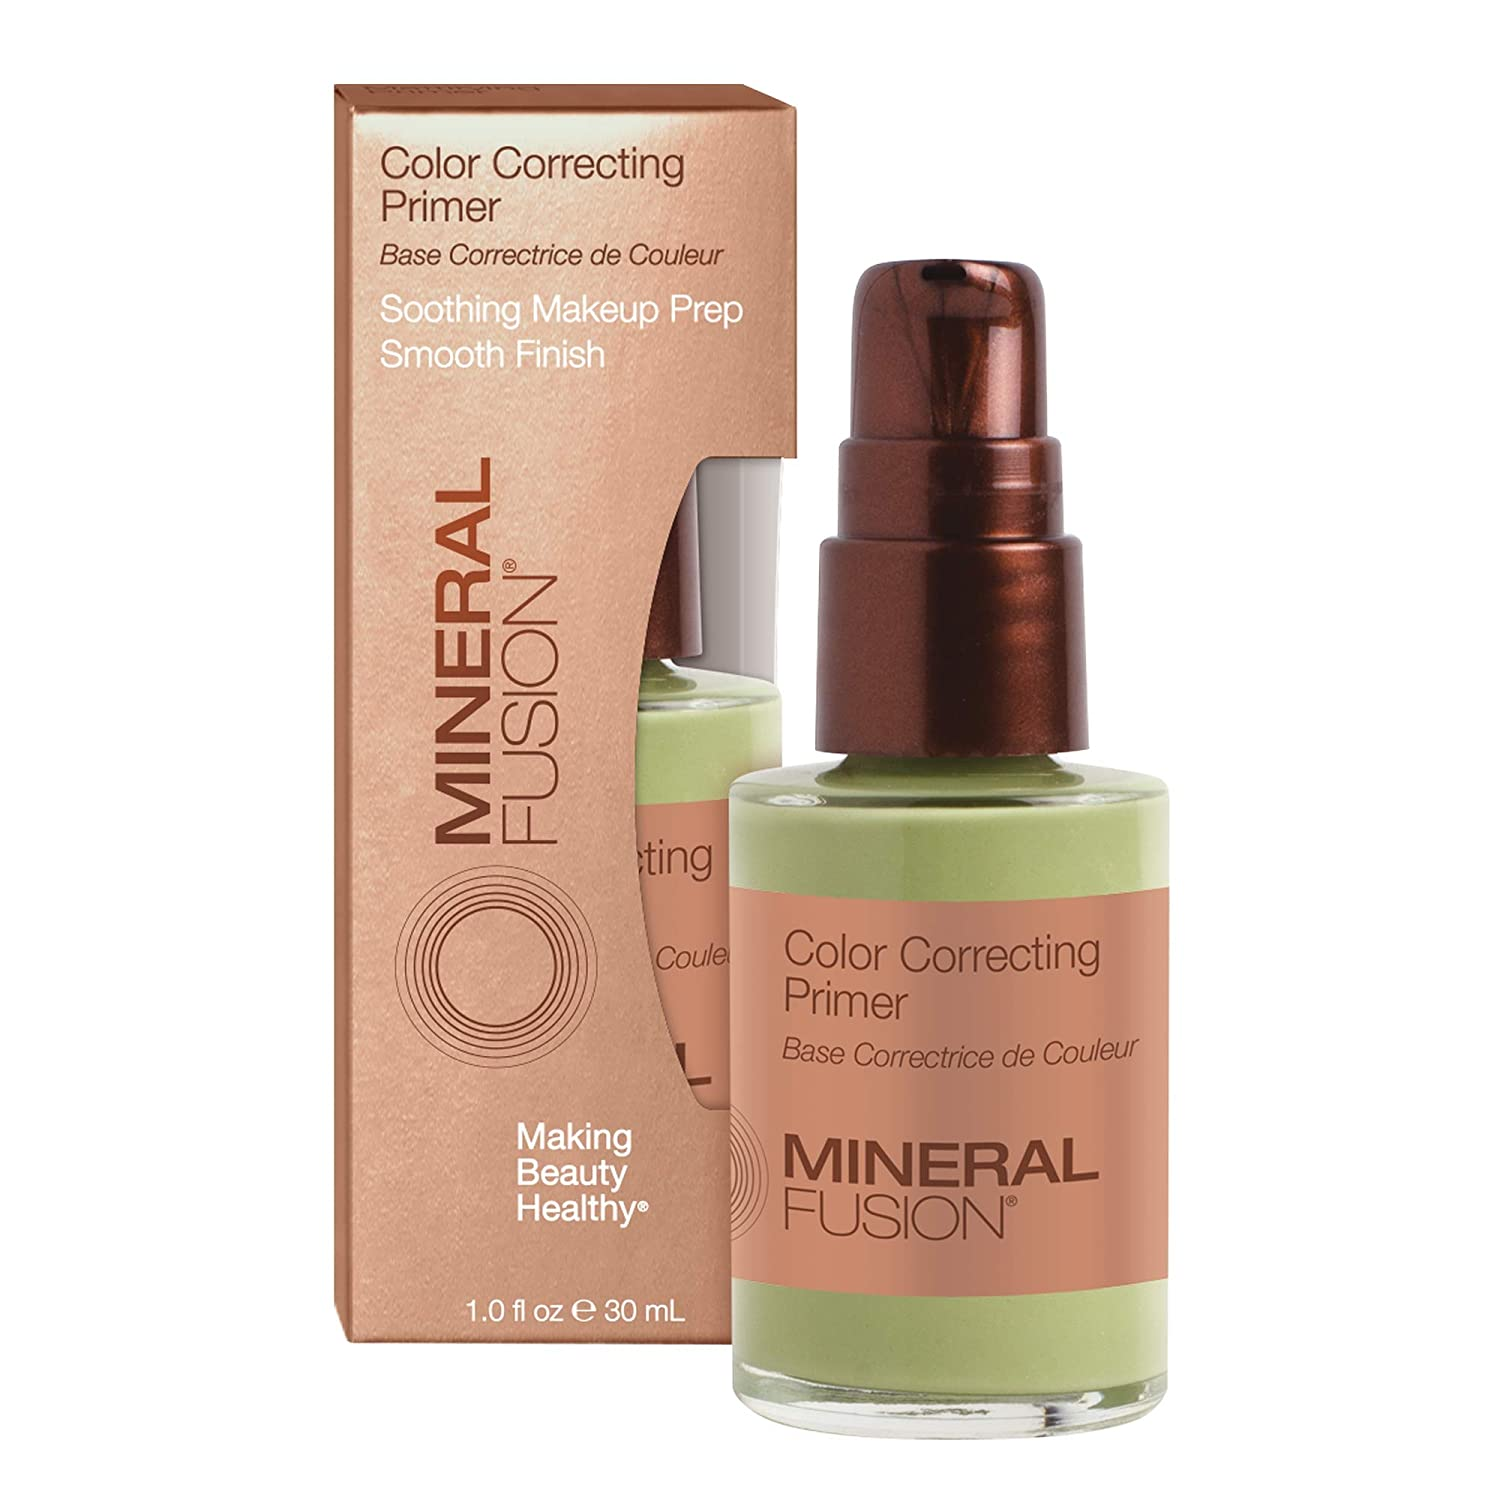 Ranking TOP18 Lowest price challenge Mineral Fusion Color Correcting 1 Primer Ounce Makeup